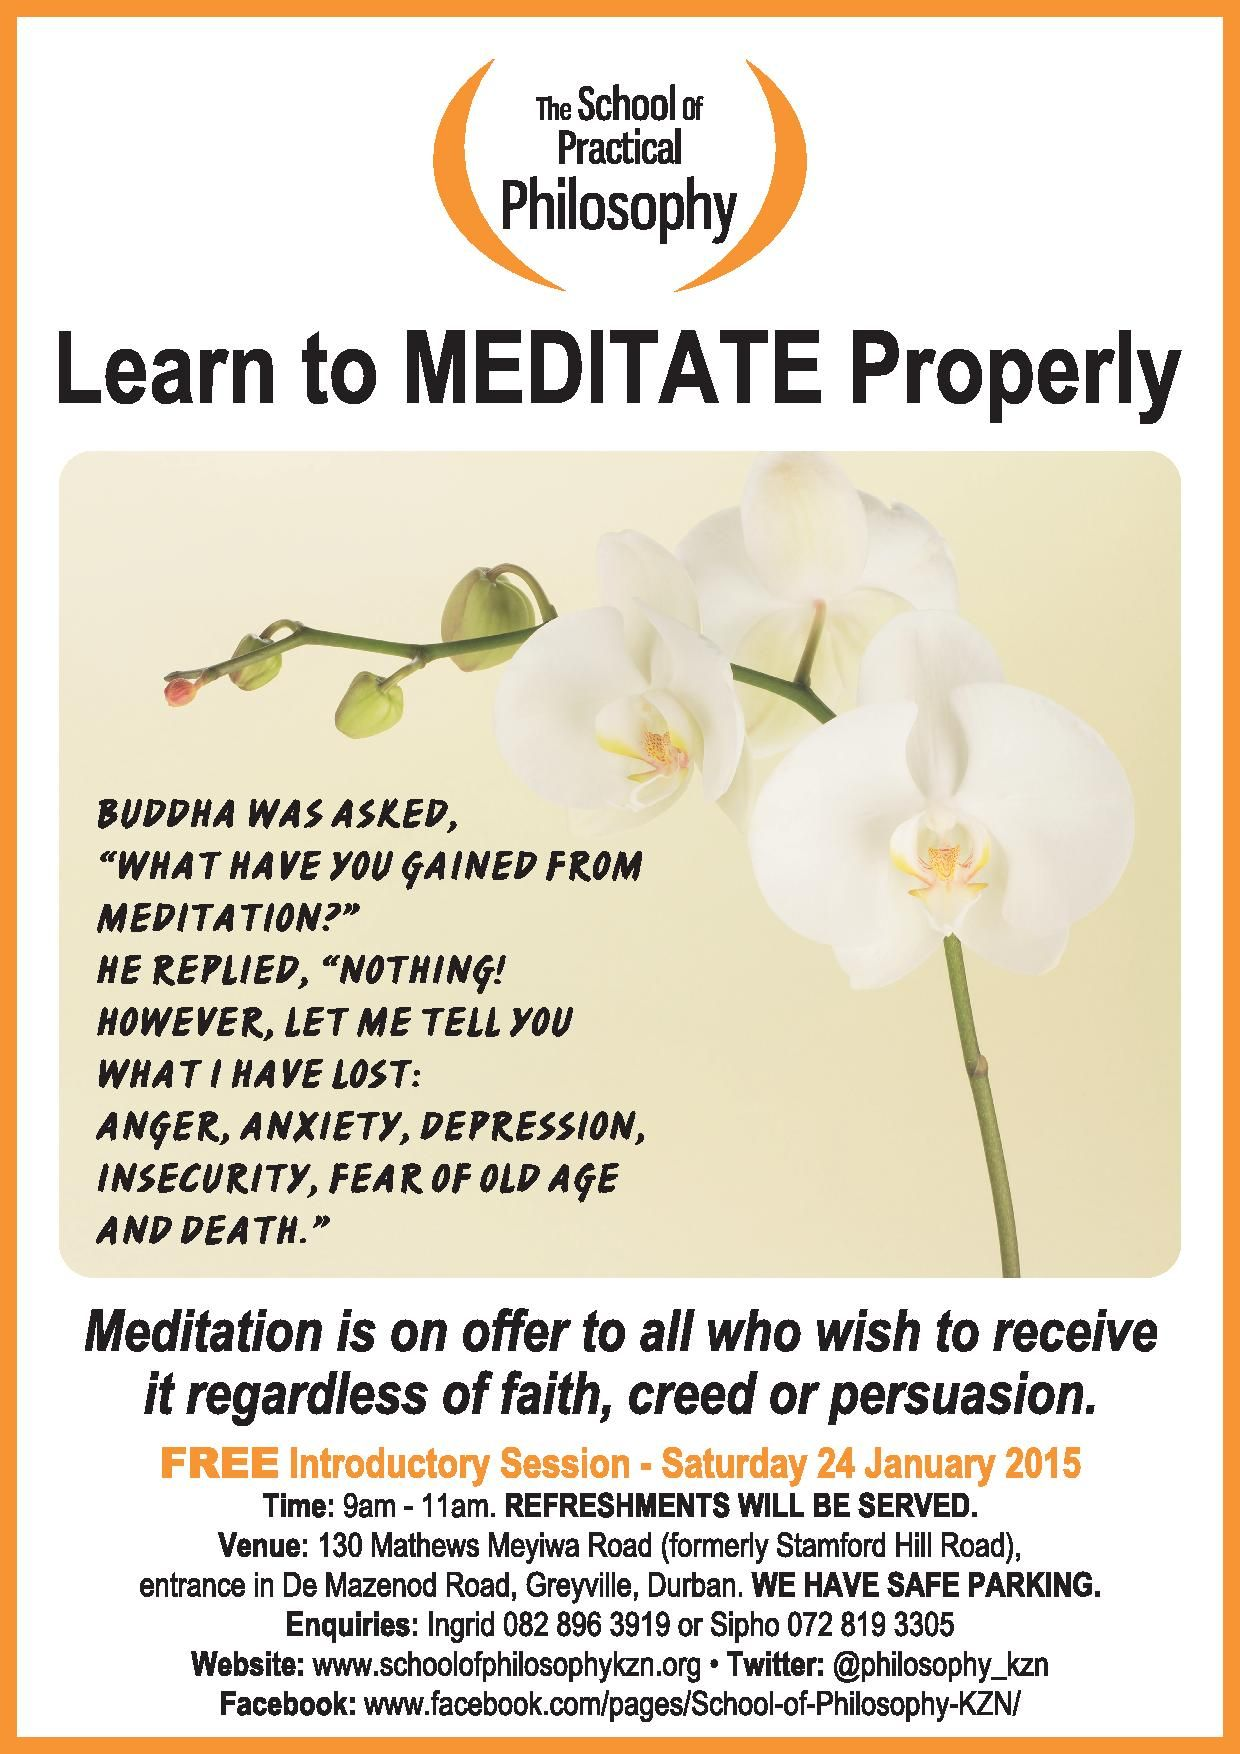 Mediatation Course Starts 24 January 2015 - All Welcome ...